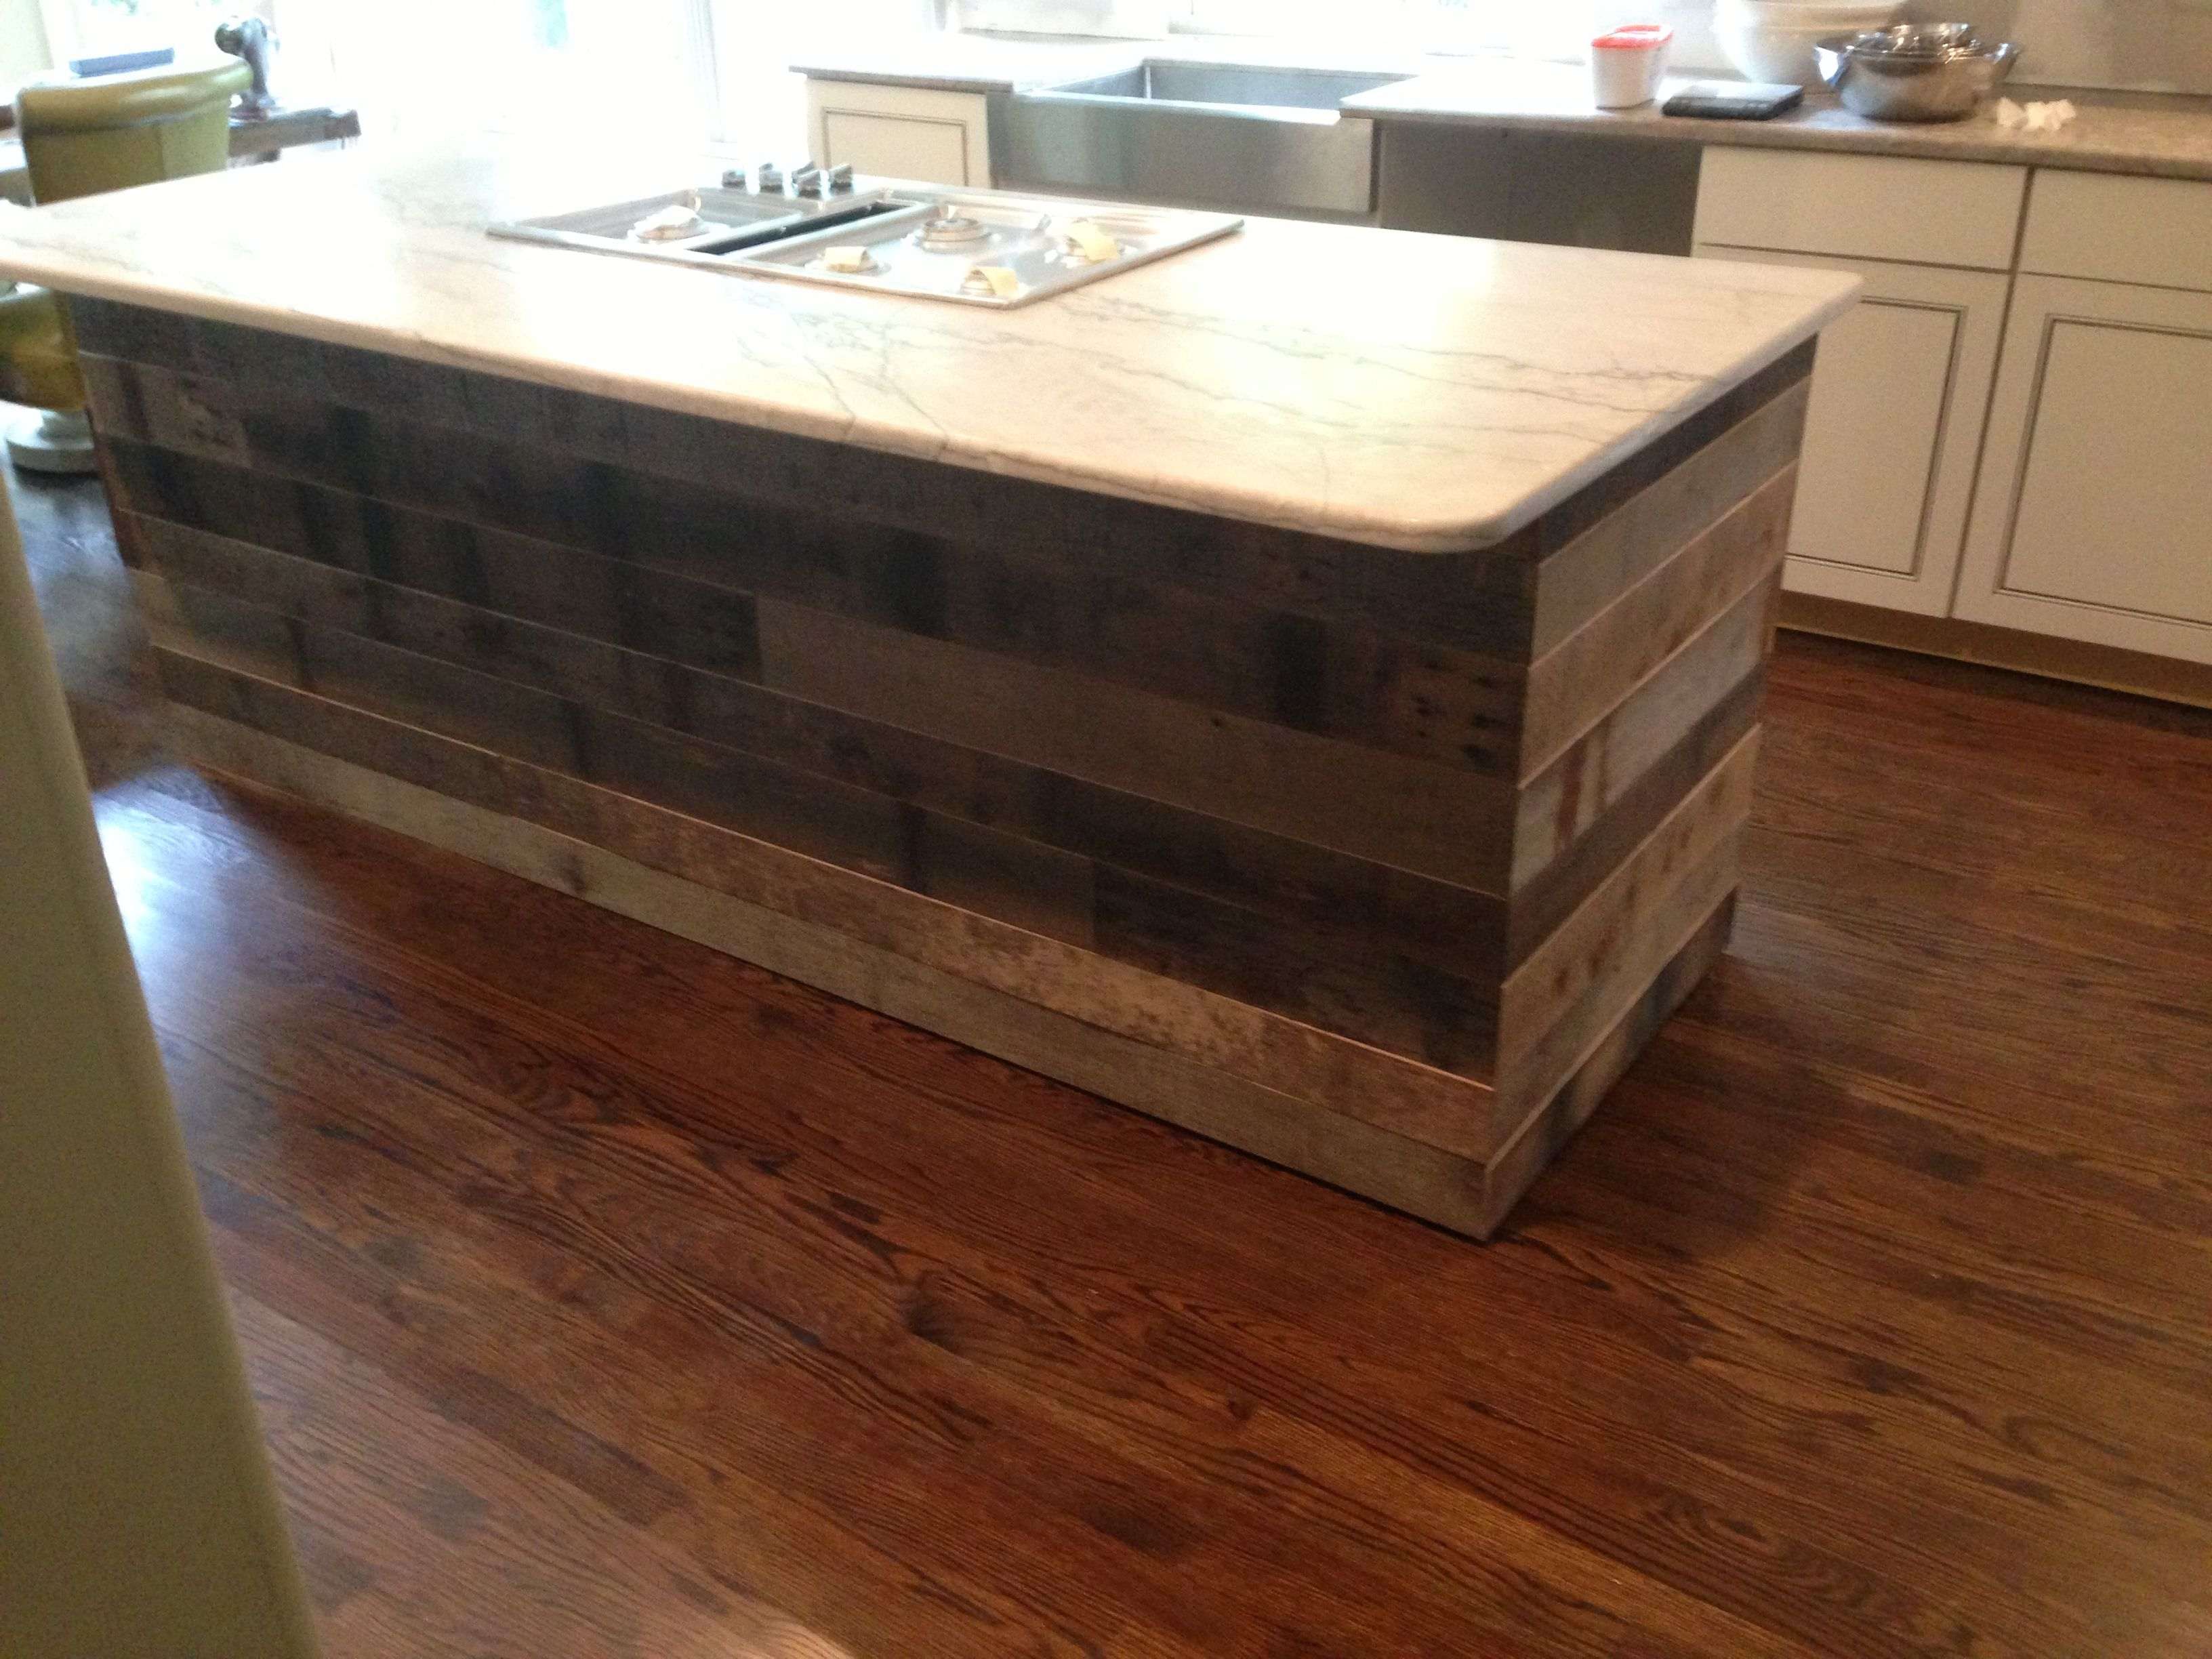 appealing reclaimed wood kitchen island | Tongue and groove reclaimed barnwood on a kitchen island ...